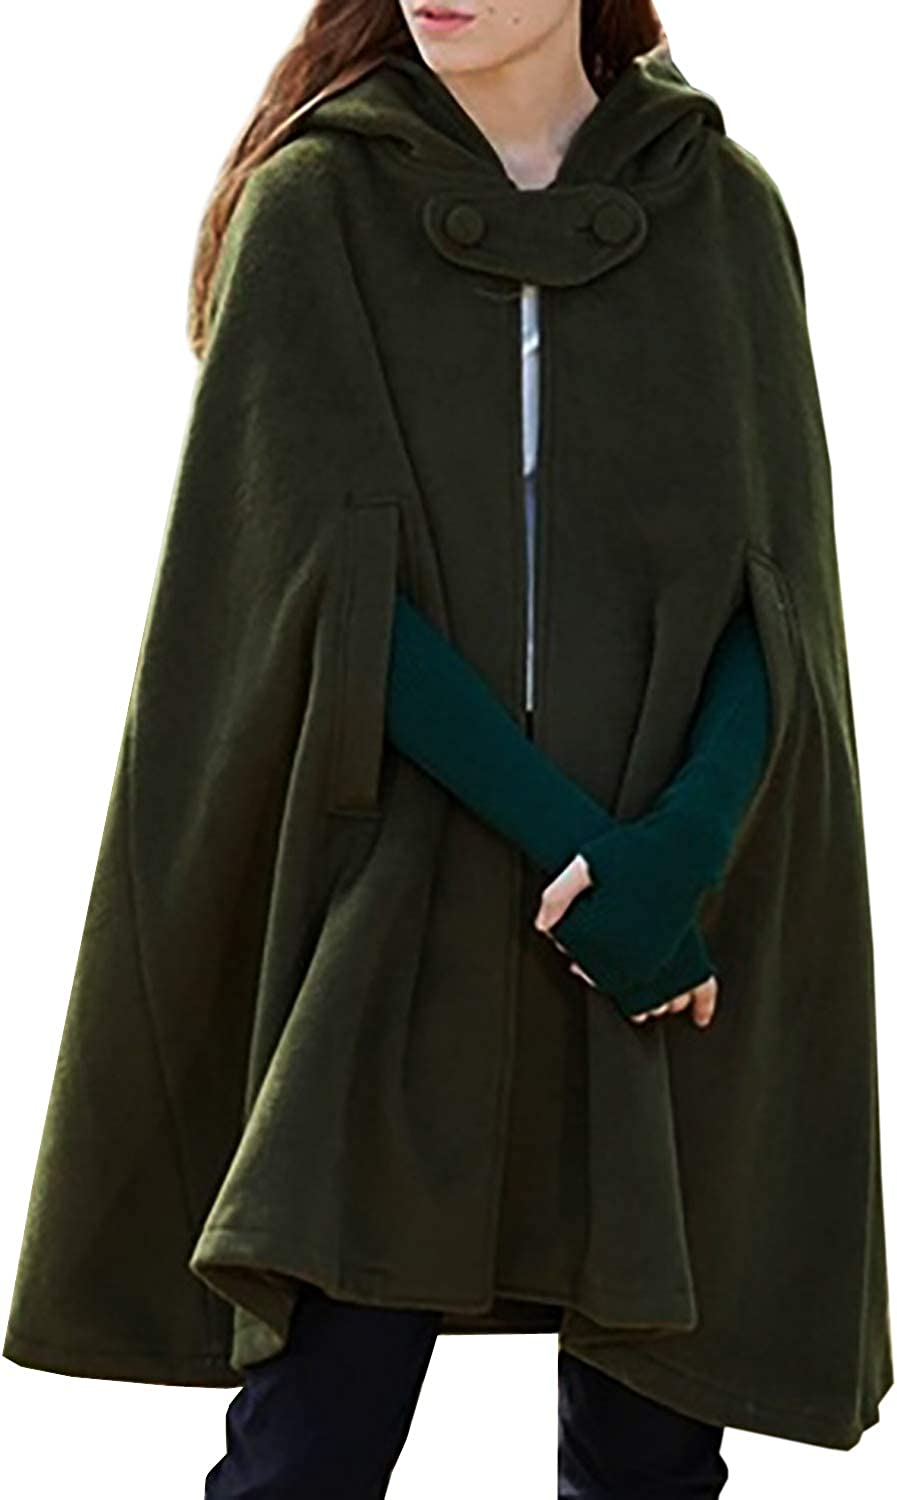 futurino Women Gothic Hooded Open Coat Cape Outwear Front Max 56% Import OFF Poncho